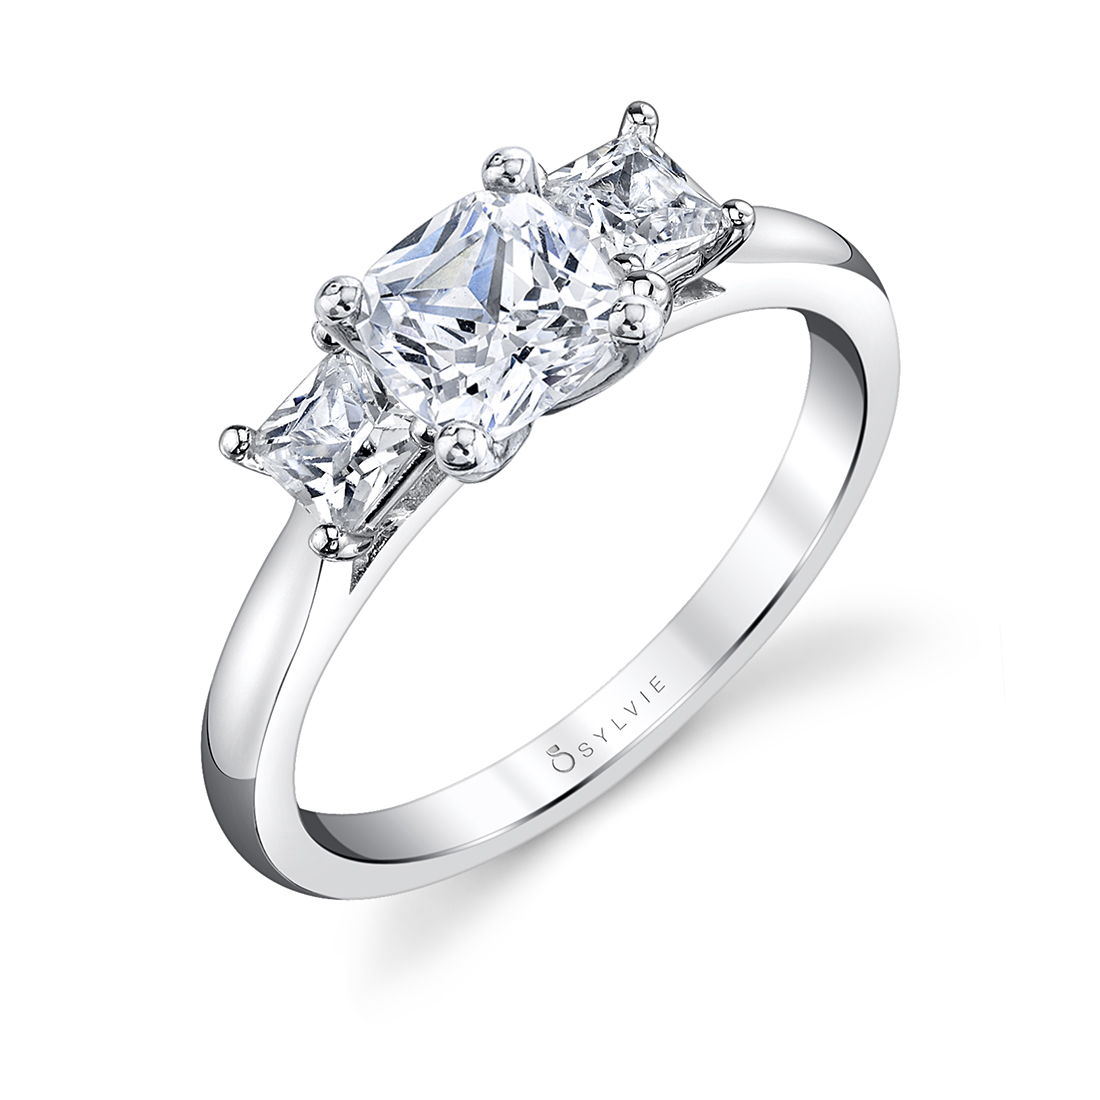 3 stone cushion cut engagement ring in white gold